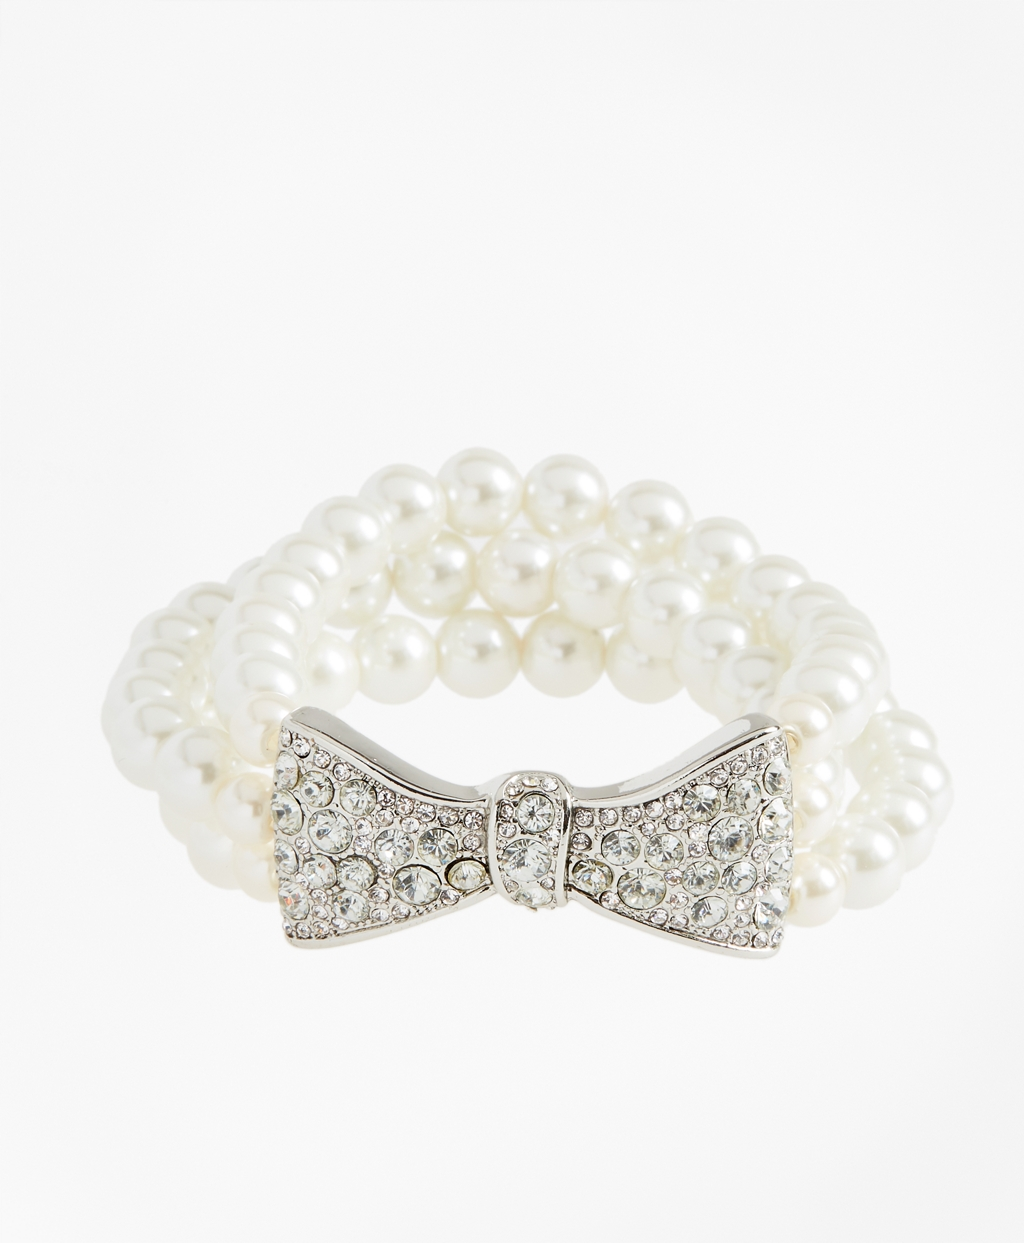 Vintage Style Jewelry, Retro Jewelry Brooks Brothers Womens Glass Pearl And Rhinestone Bow Bracelet $48.00 AT vintagedancer.com